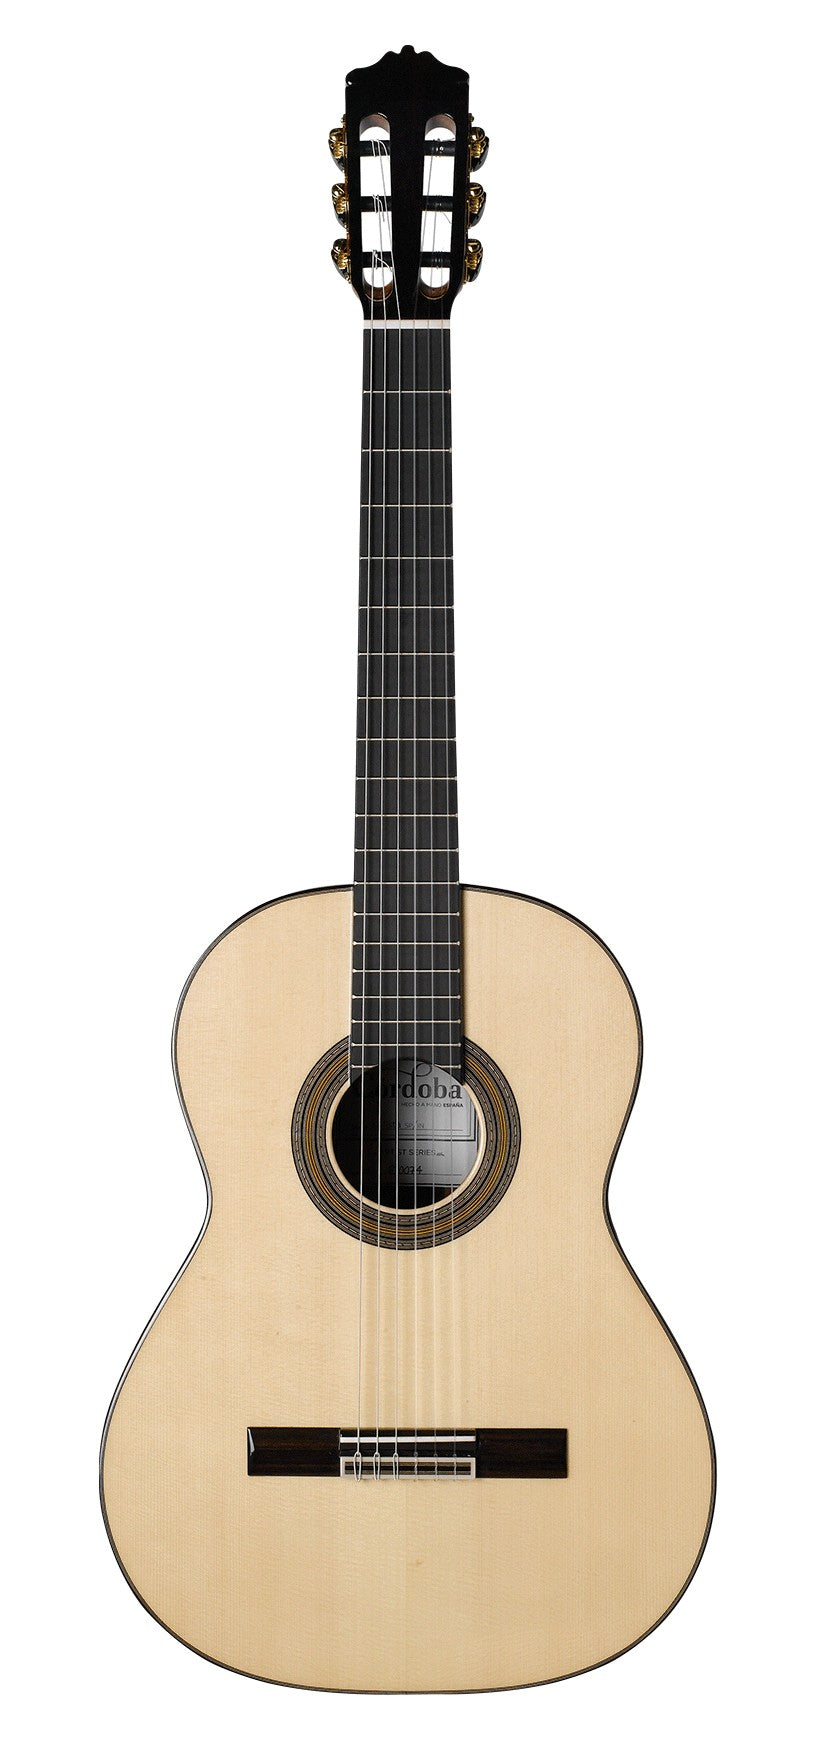 Cordoba Solista SP All Solid Spruce/Rosewood Nylon String Acoustic Guitar